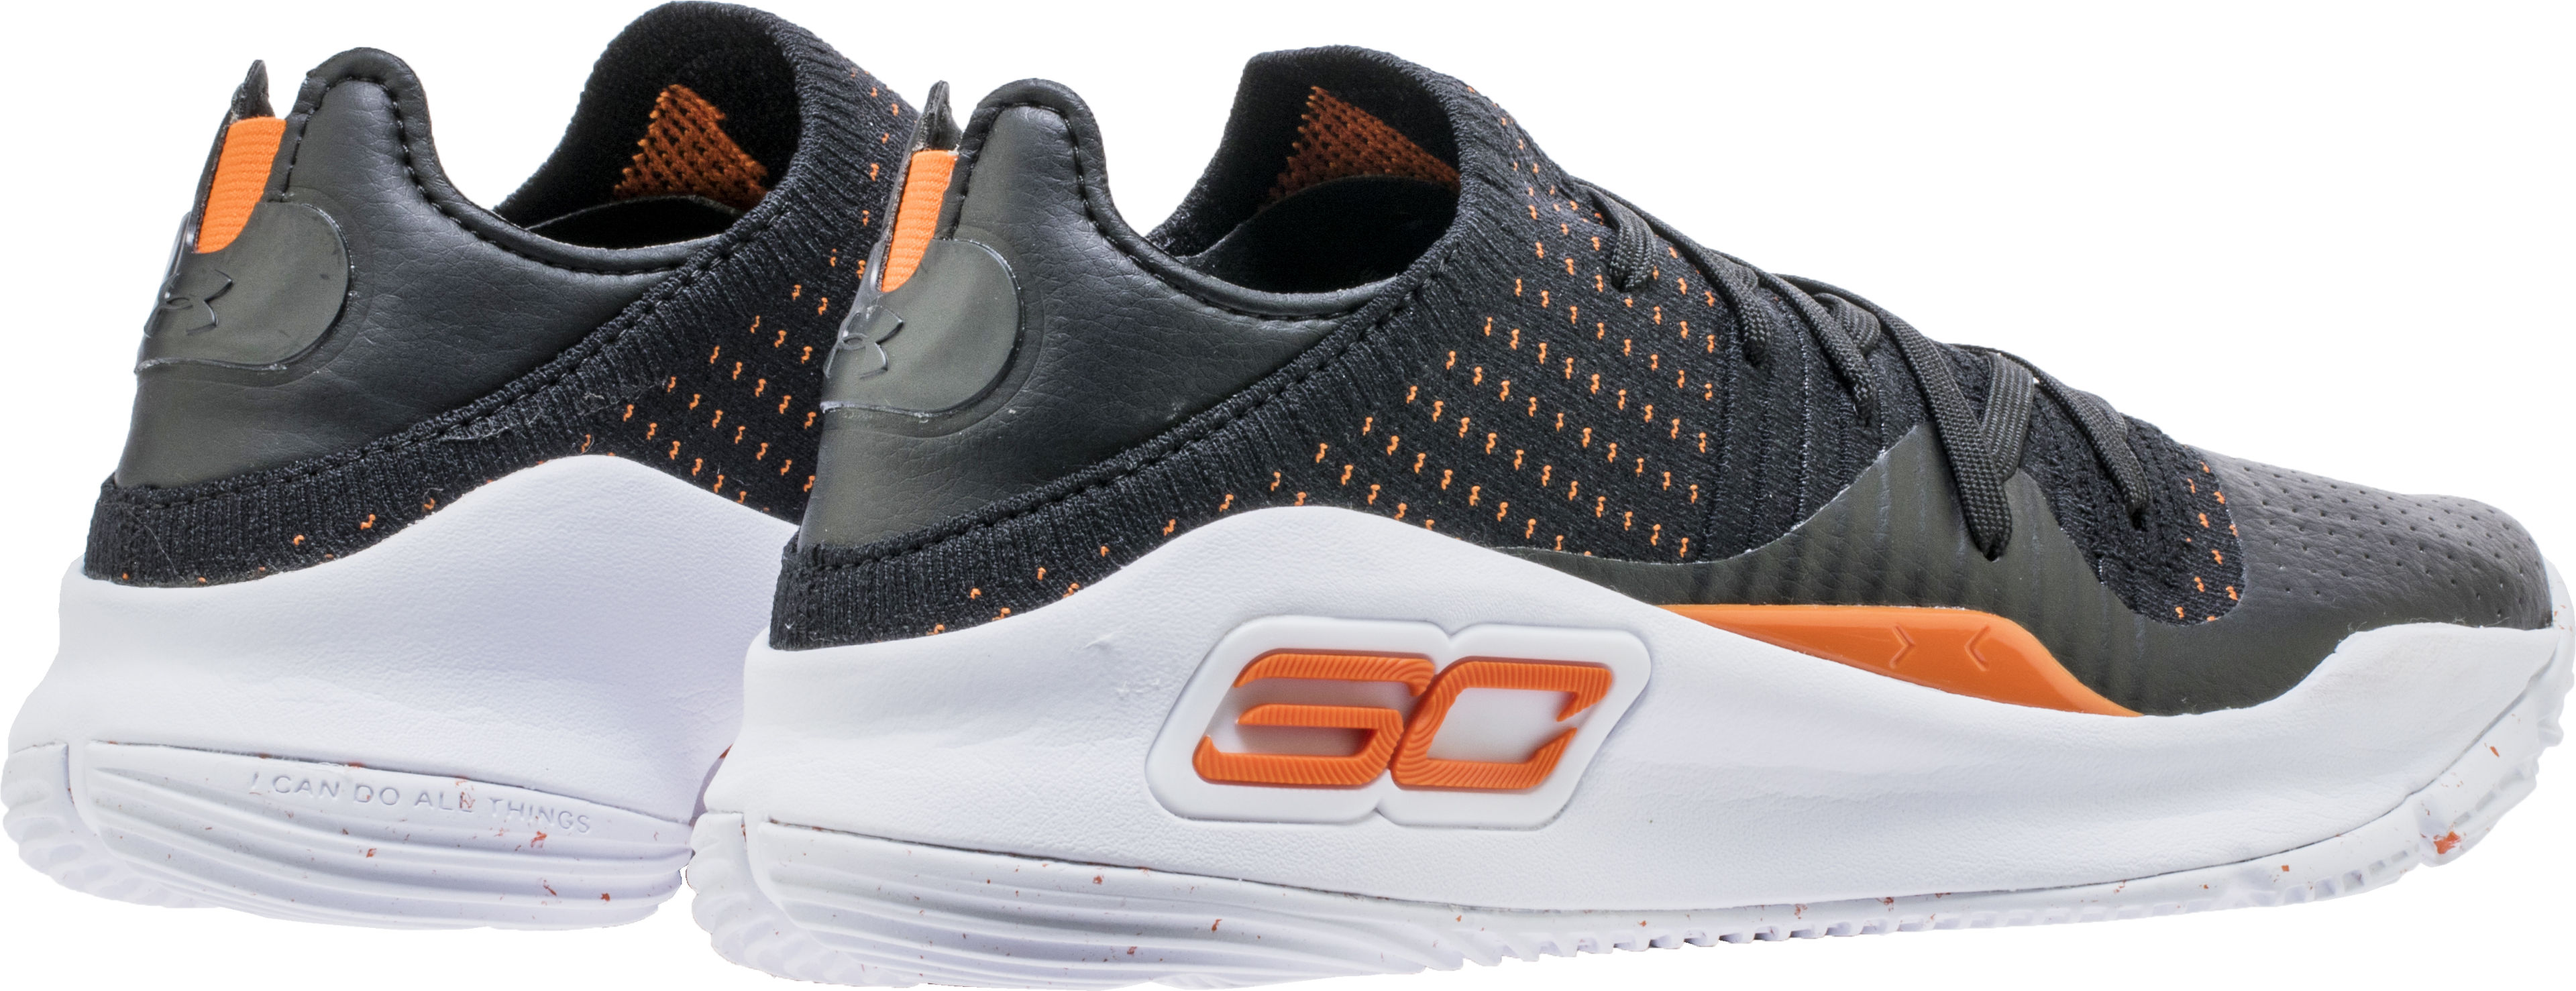 under armour curry 4 low san francisco giants 5